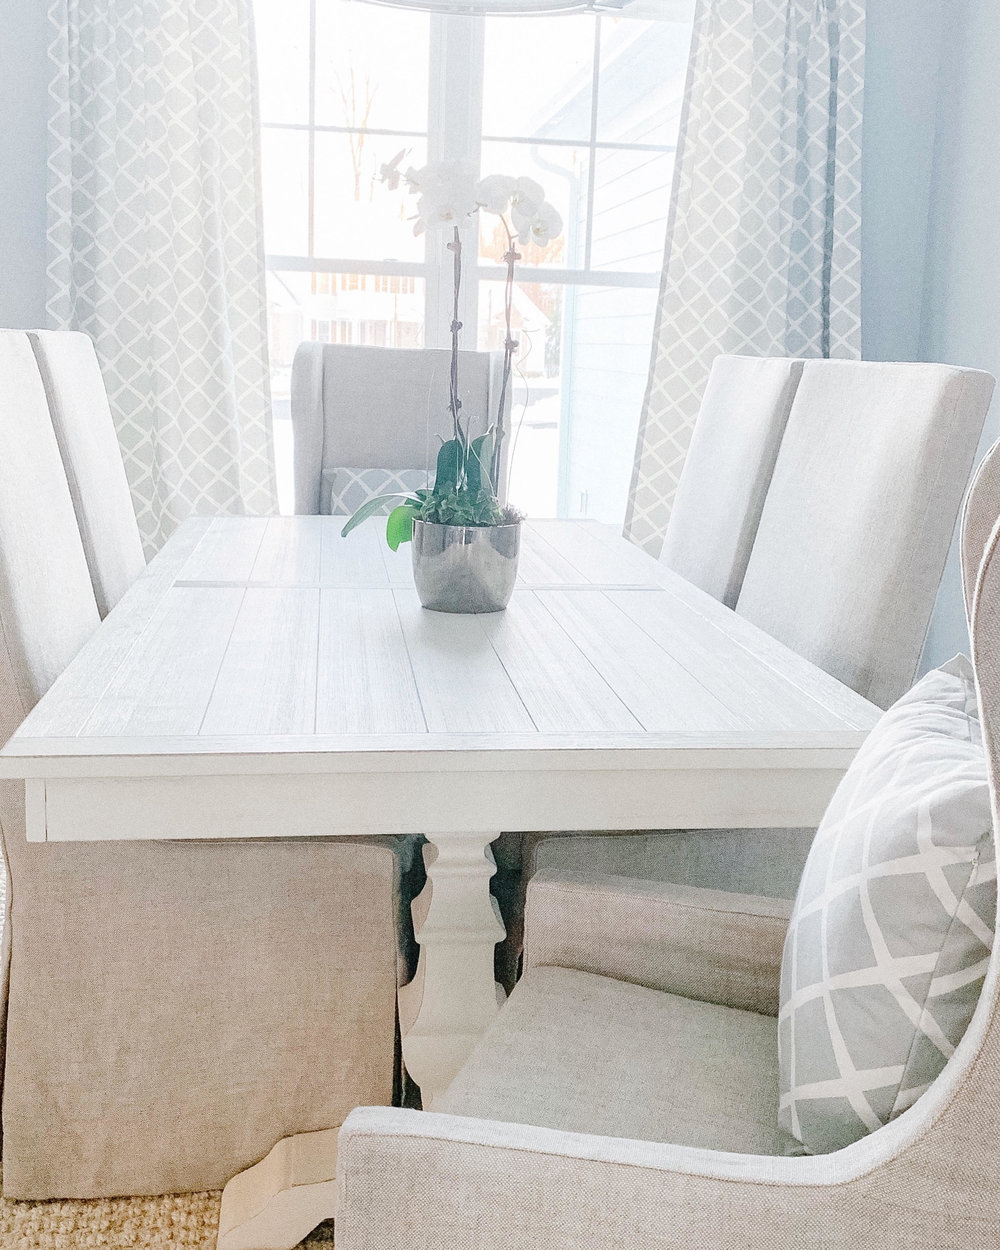 Shop Our Dining Room - Coming soon